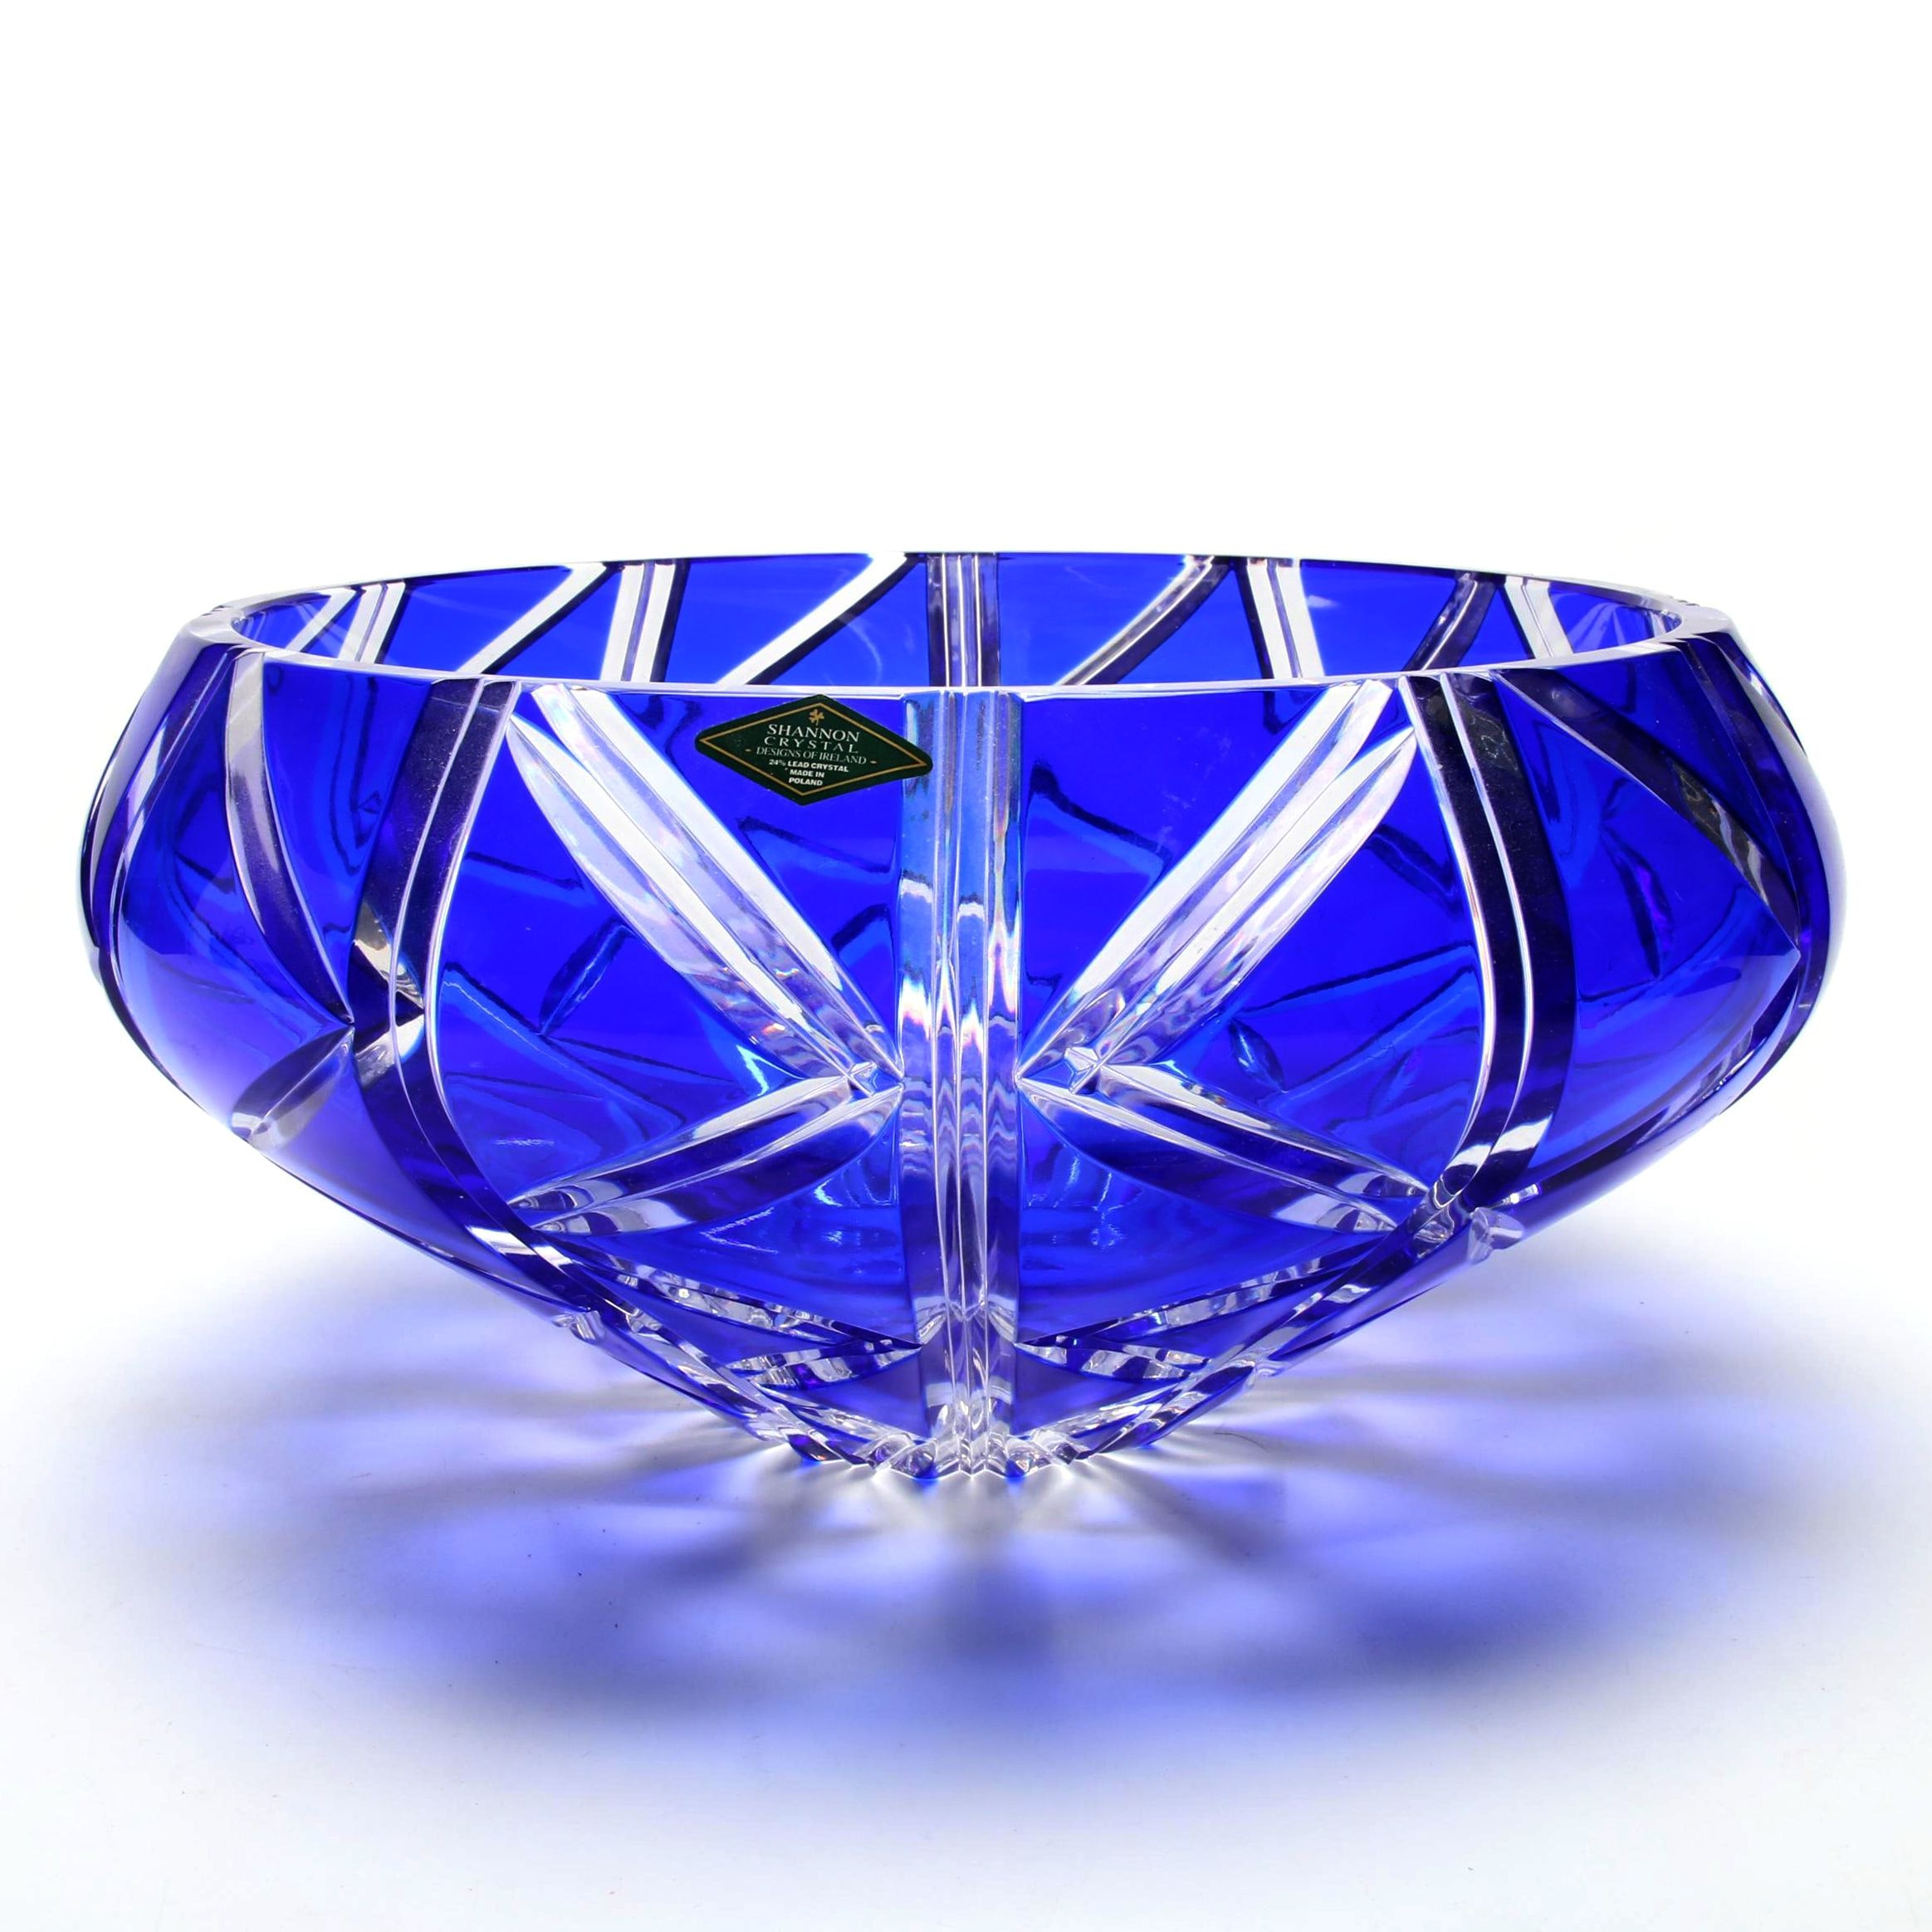 Shannon Crystal Cased Cobalt Cut to Clear Center Bowl